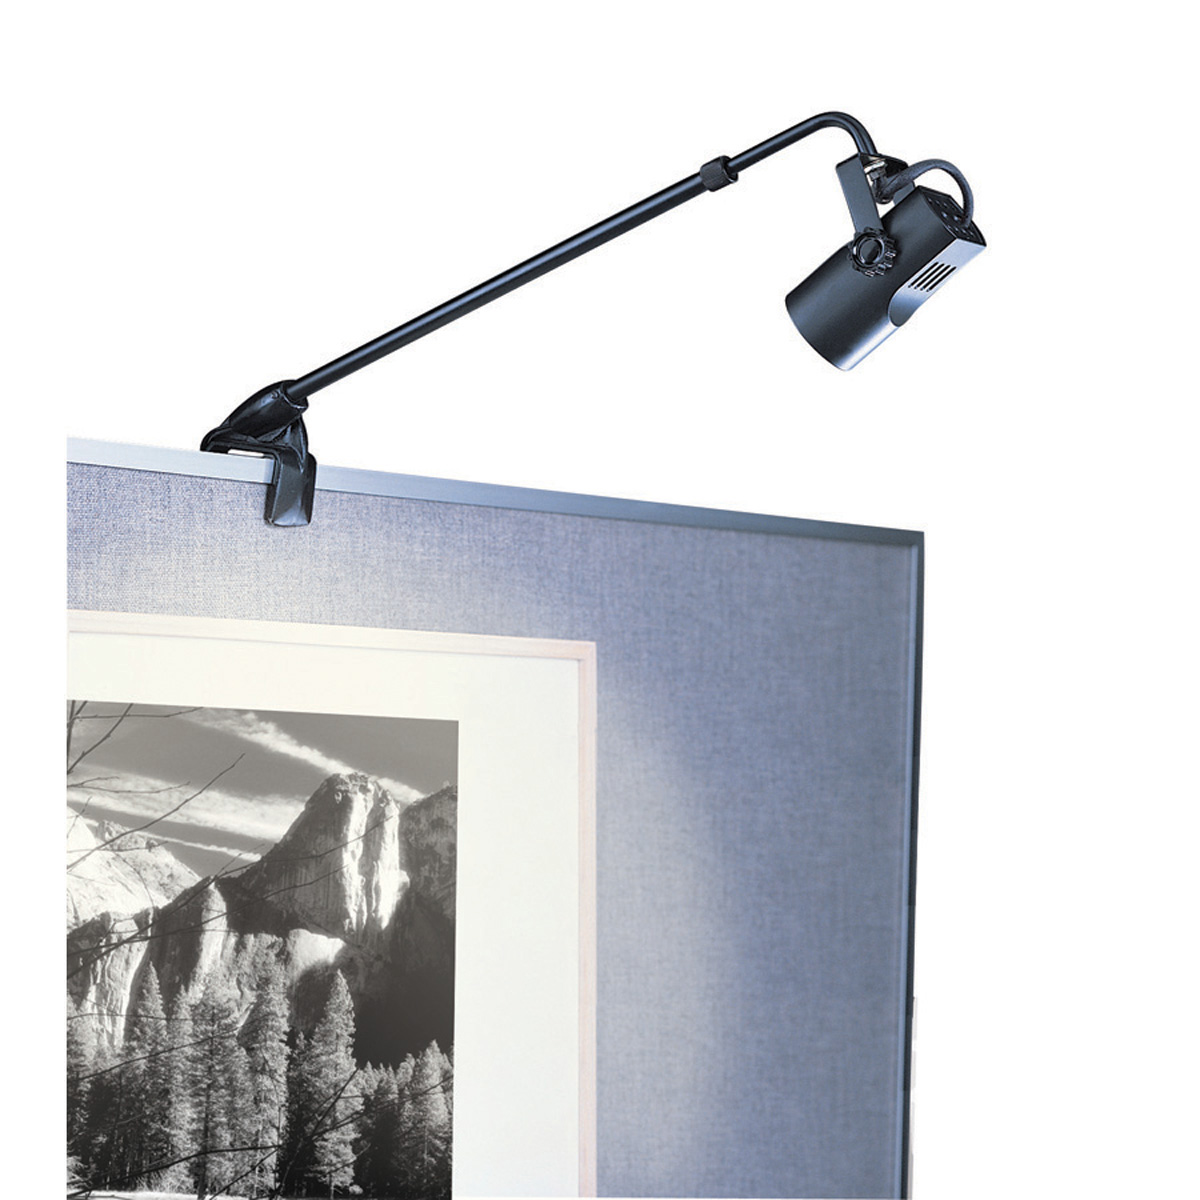 Dl 007 Low Voltage Display Light By Wac Lighting